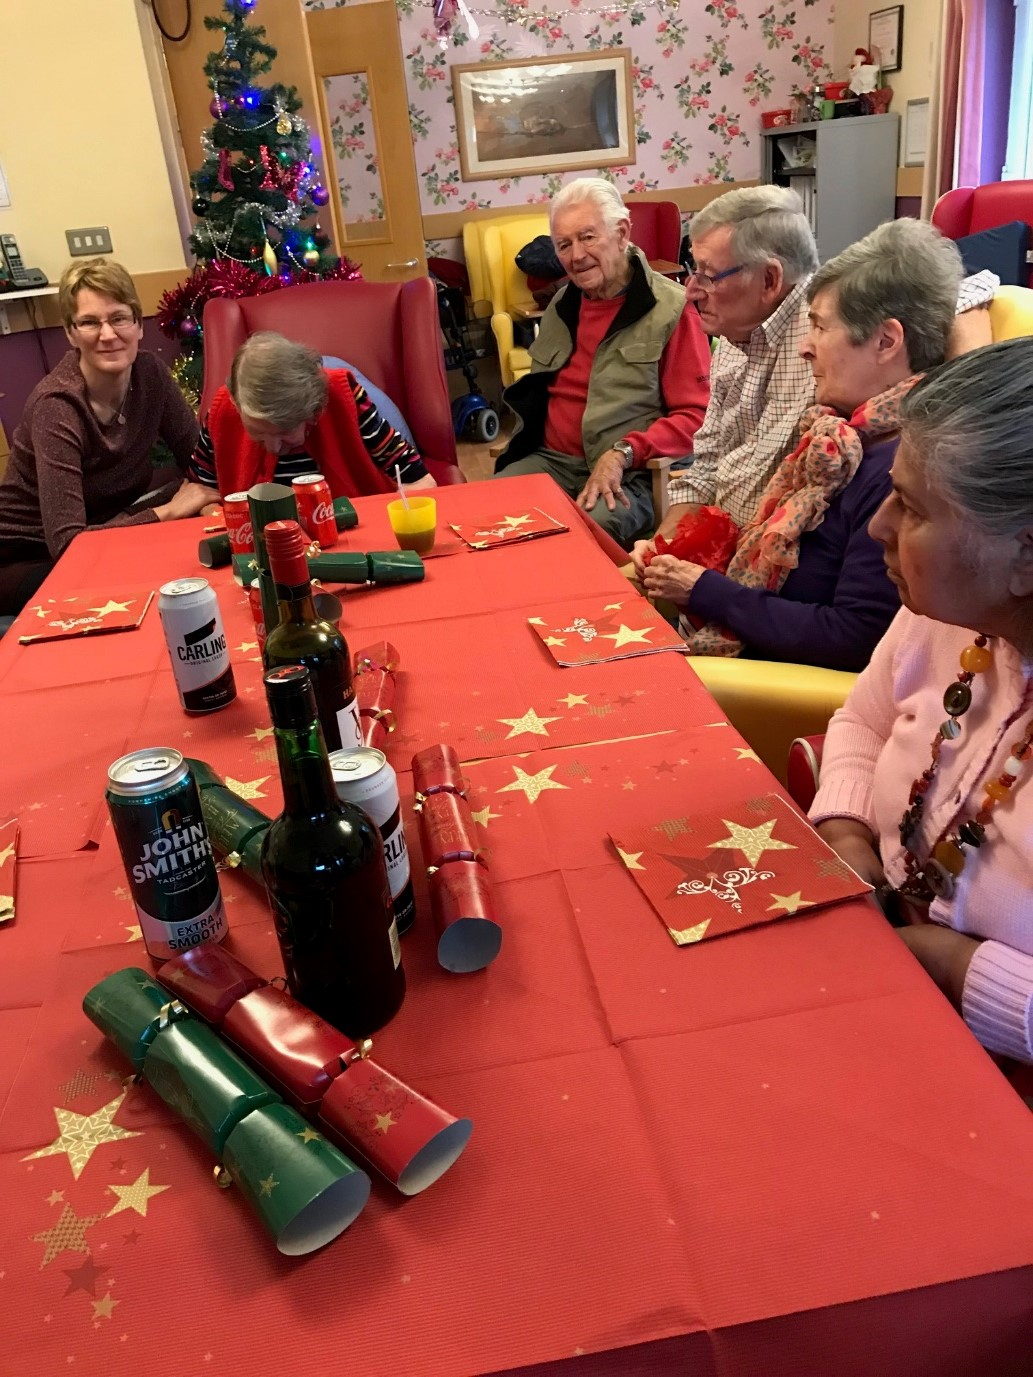 CHRISTMAS DAY IN UPPER CHERRY TREE COURT